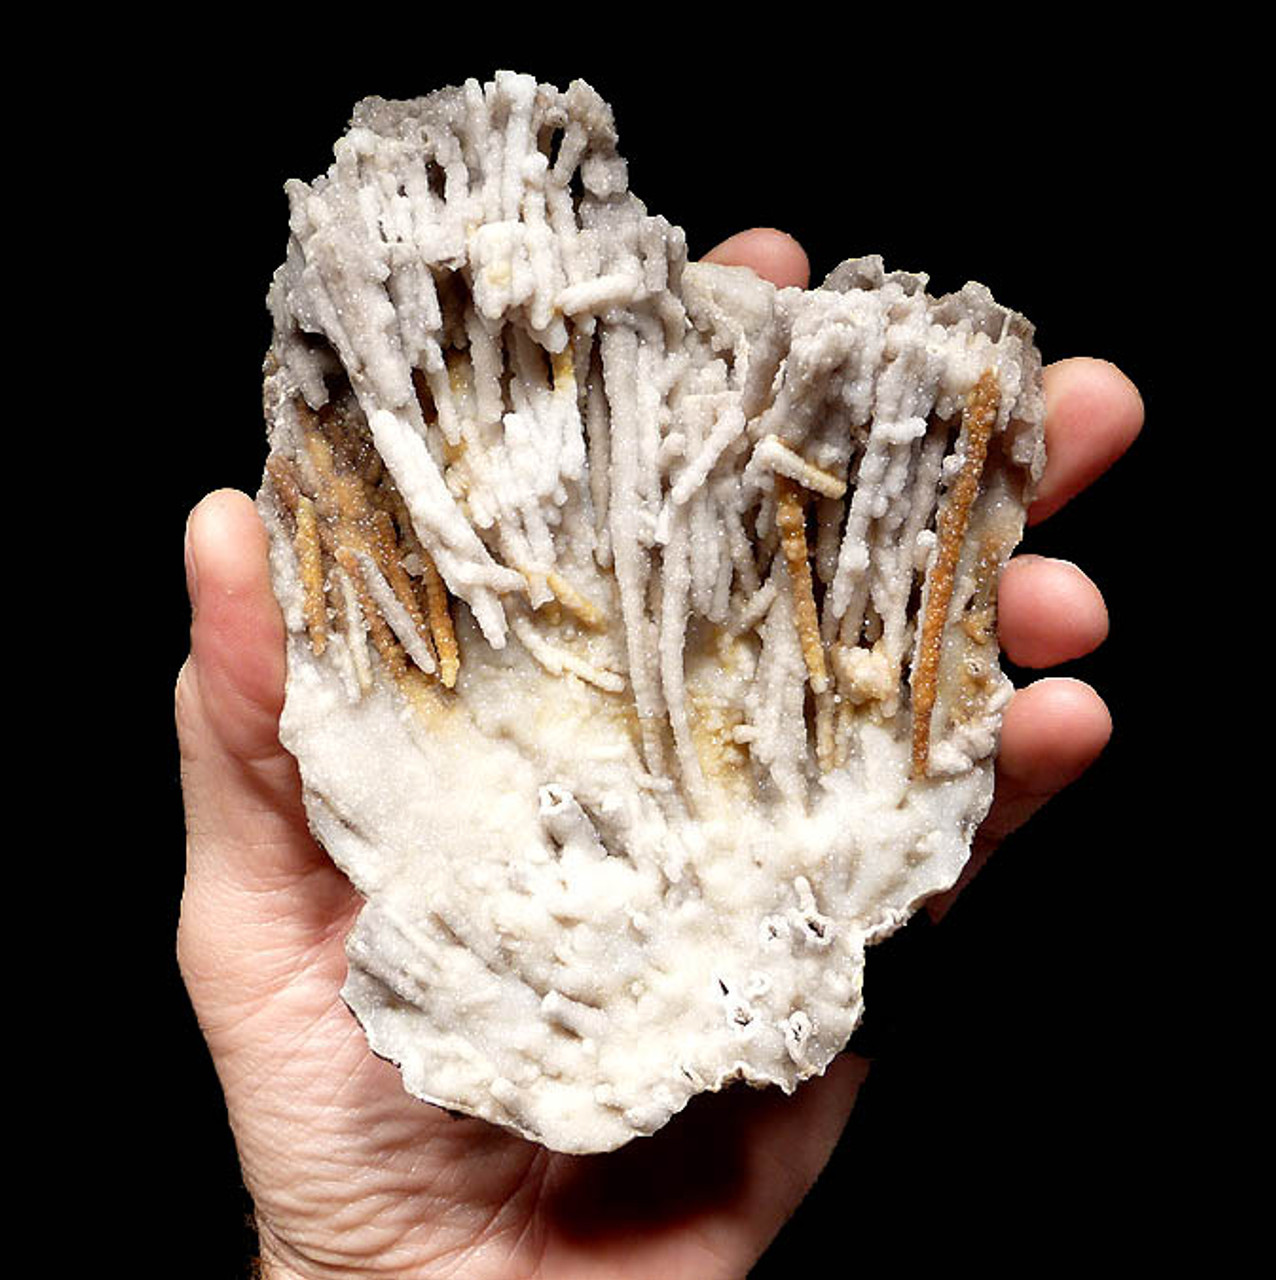 GEM GRADE AGATIZED FOSSIL CORAL WITH DRUSY CRYSTALS OVER DELICATE FREE-STANDING POLYP RODS *COR093